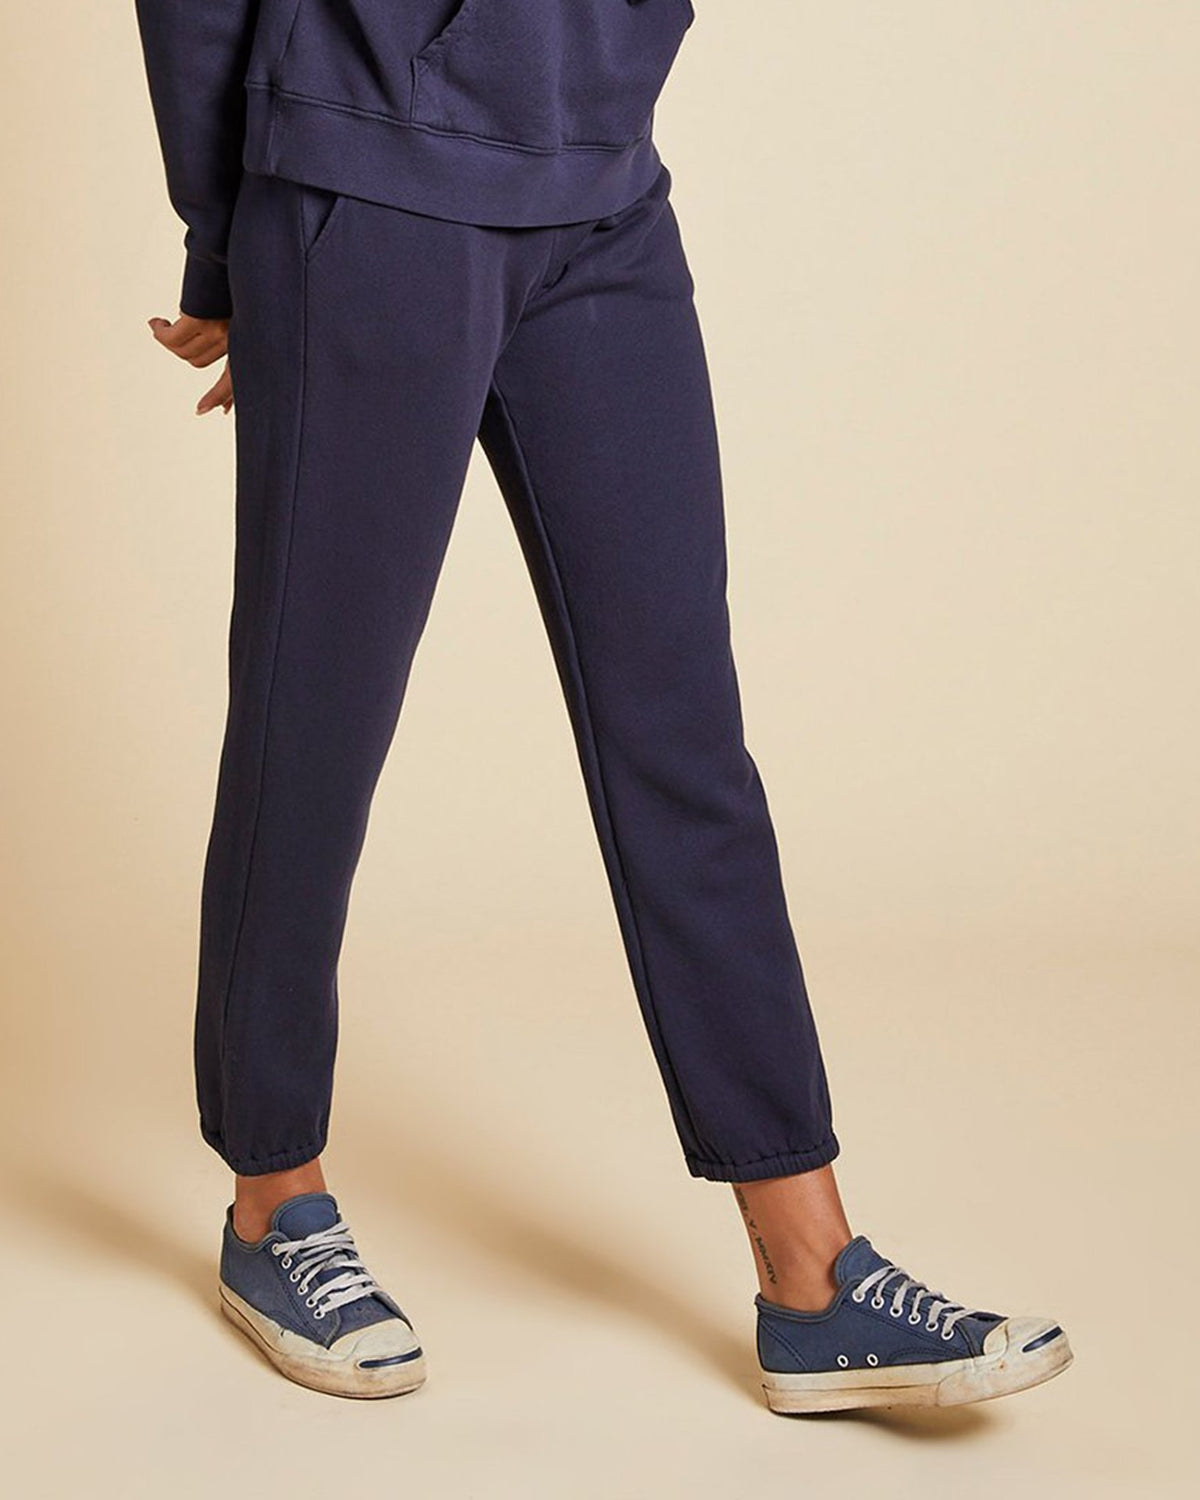 Velvet by Graham & Spencer Clothing Zuma Sweatpants in Navy